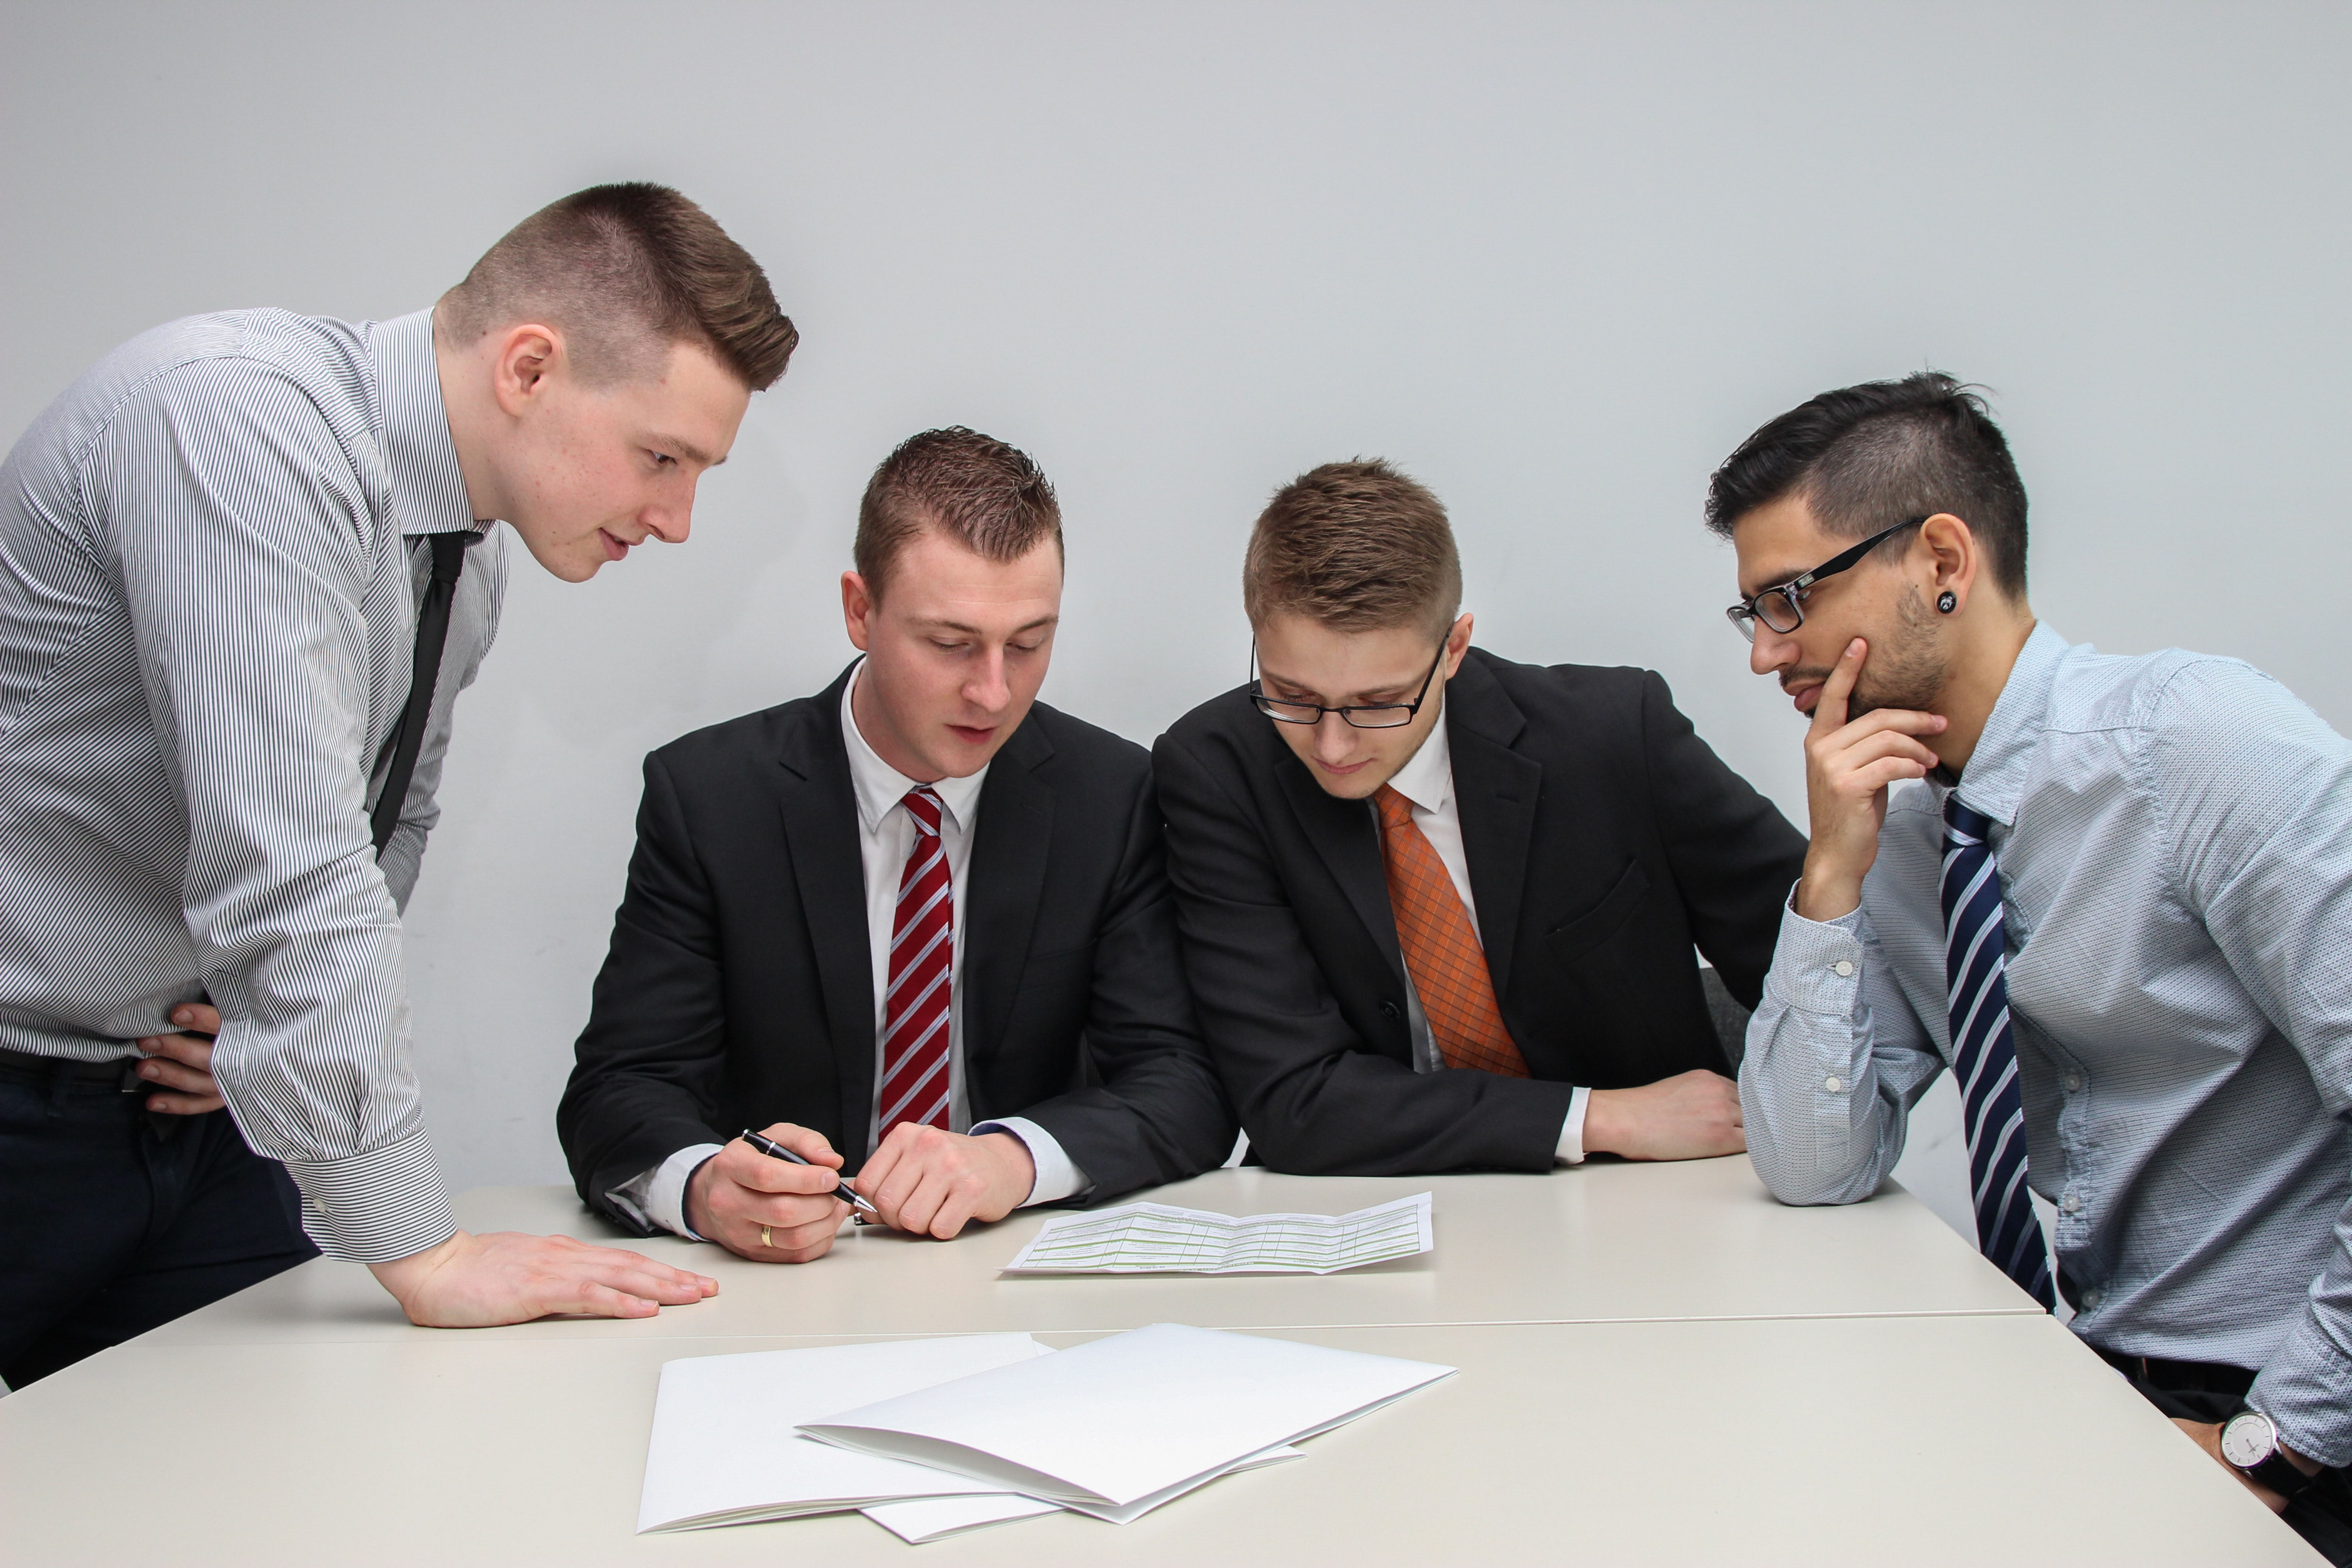 Specialized Types of Interviews